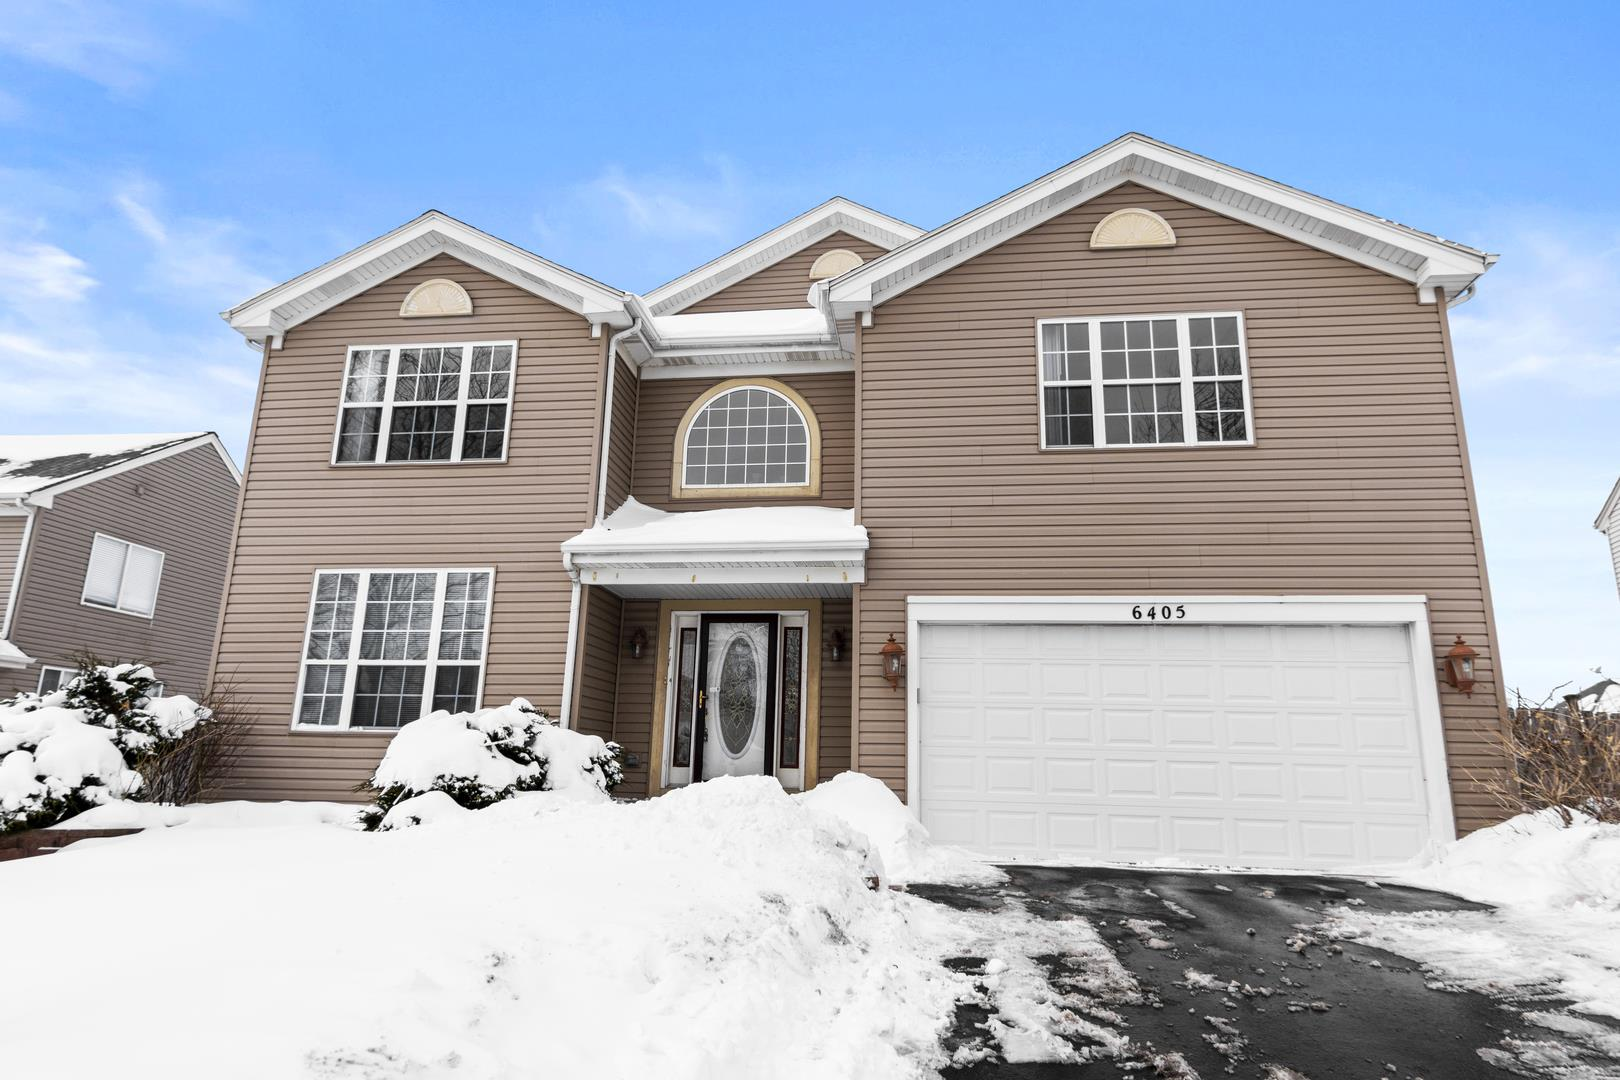 6405 Grassmere Lane, Carpentersville, IL 60110 - #: 10989021